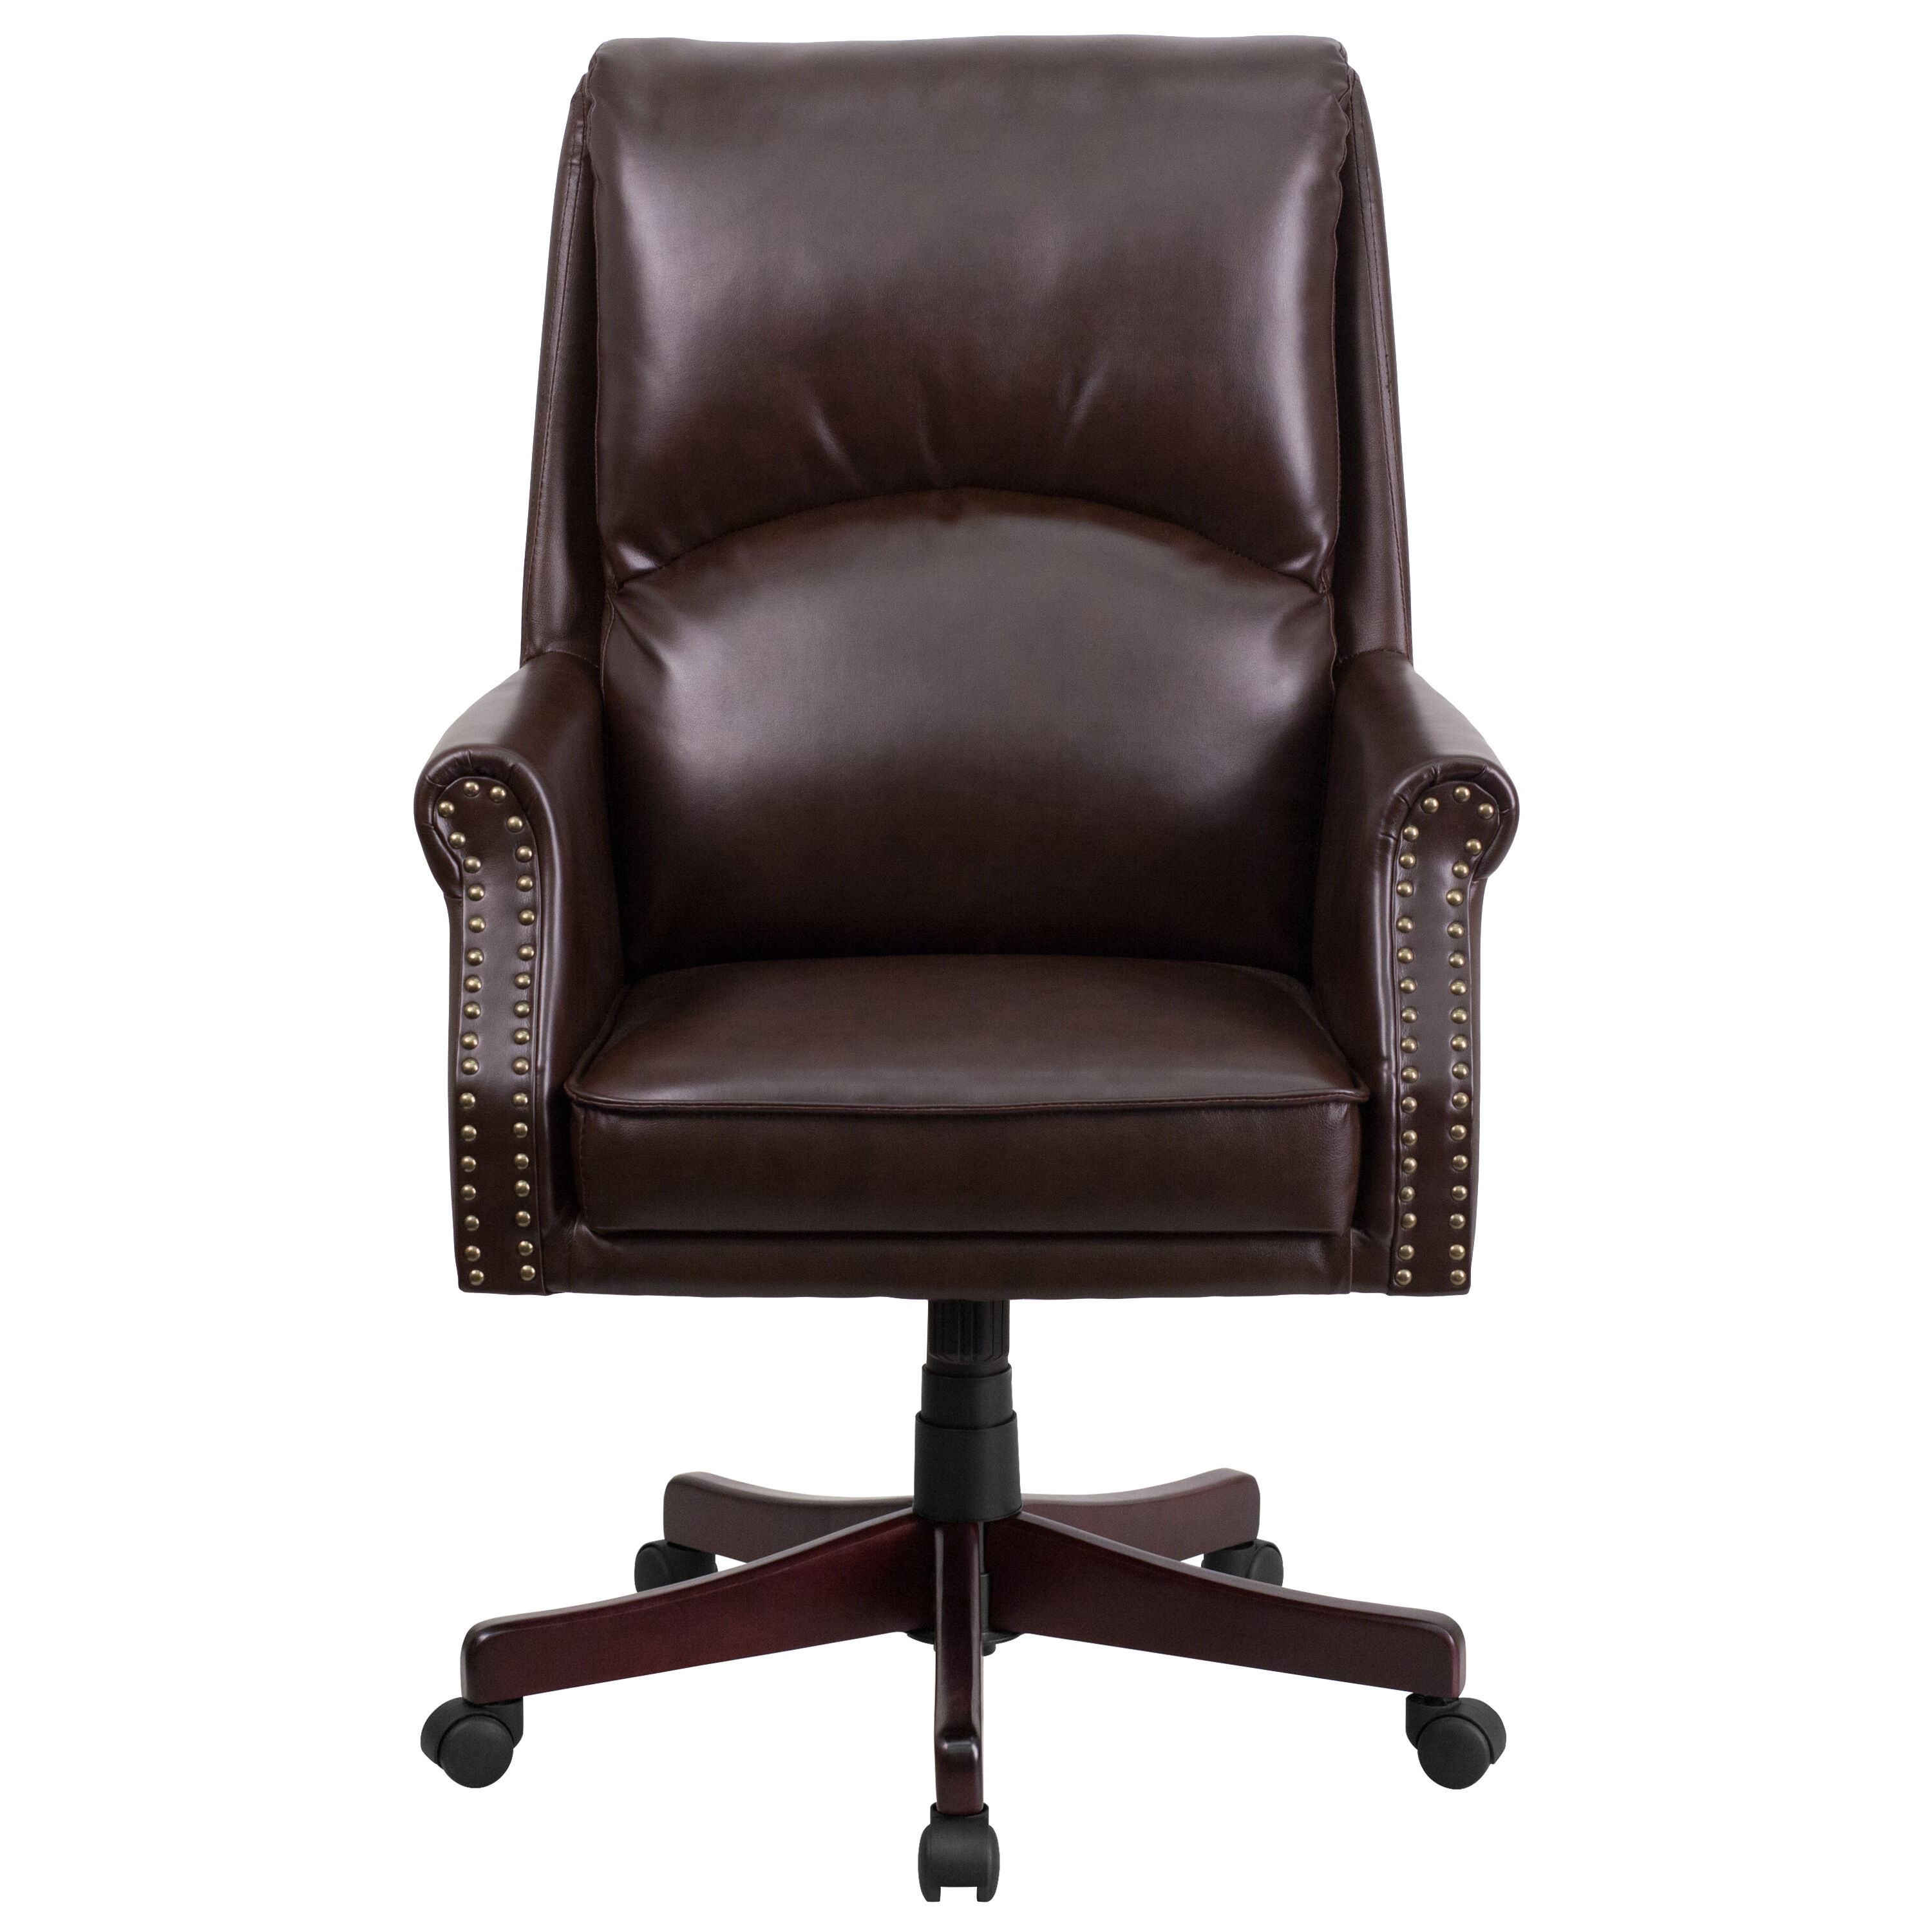 Executive Leather Chair High Back Pillow Back Brown Leather Executive Swivel Office Chair With Arms